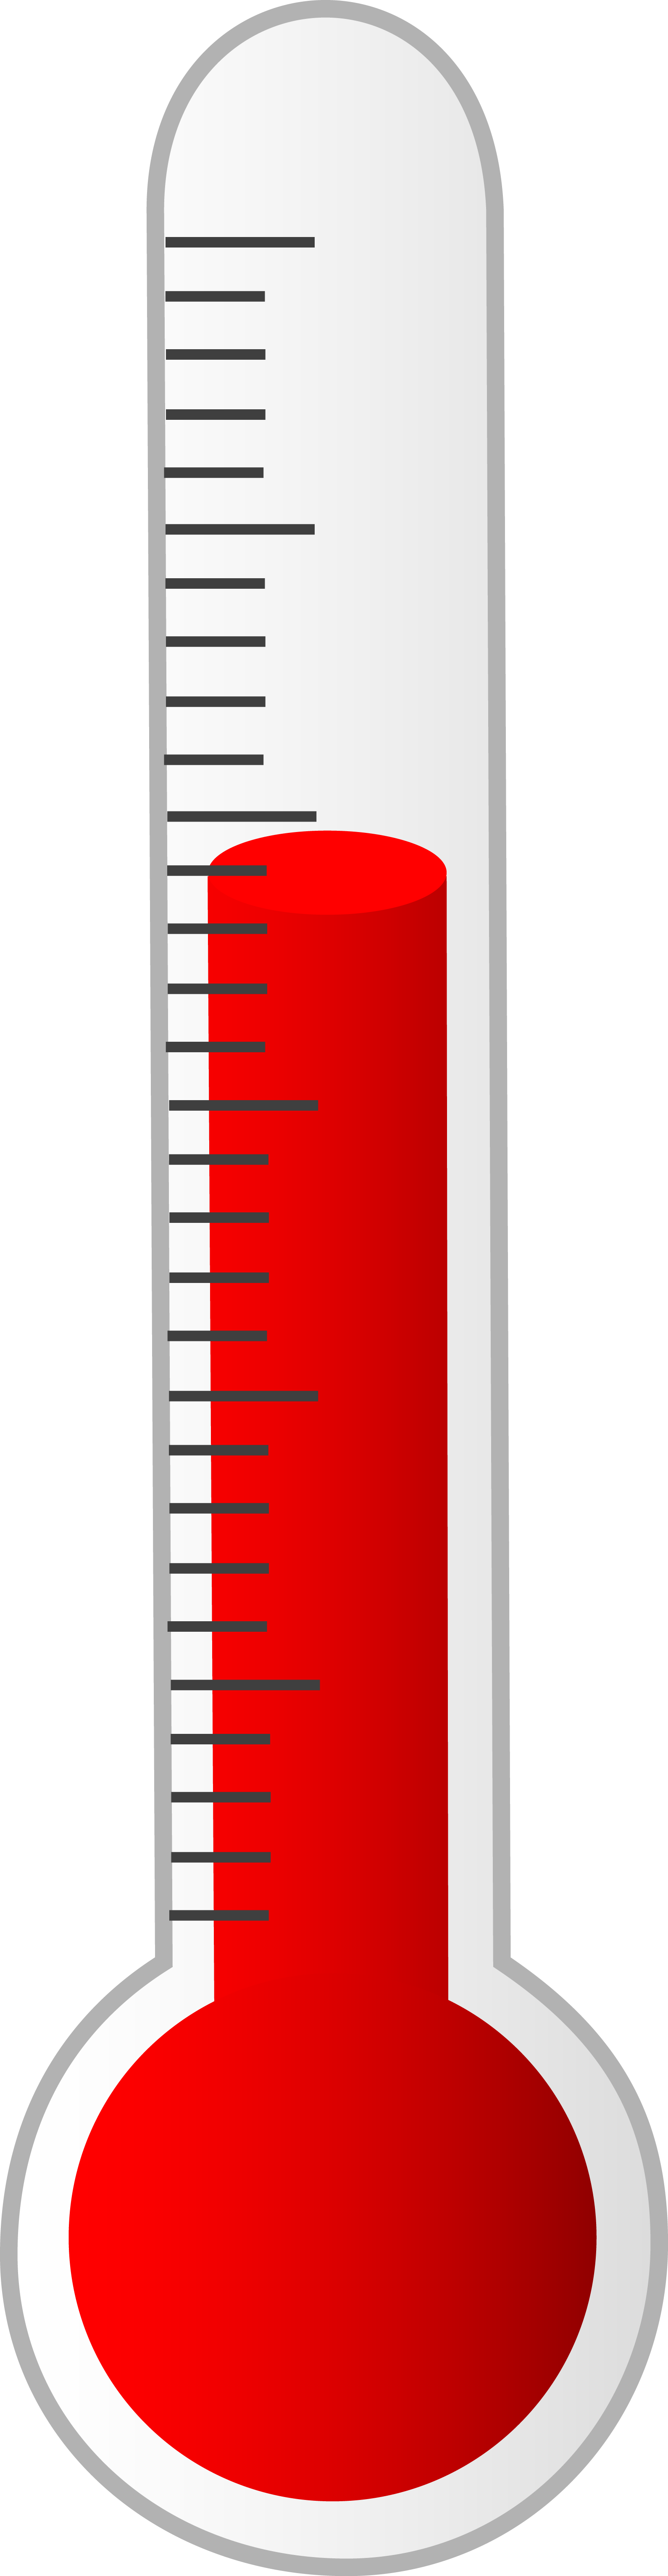 1590x6130 Printable Fundraising Thermometer Clipart